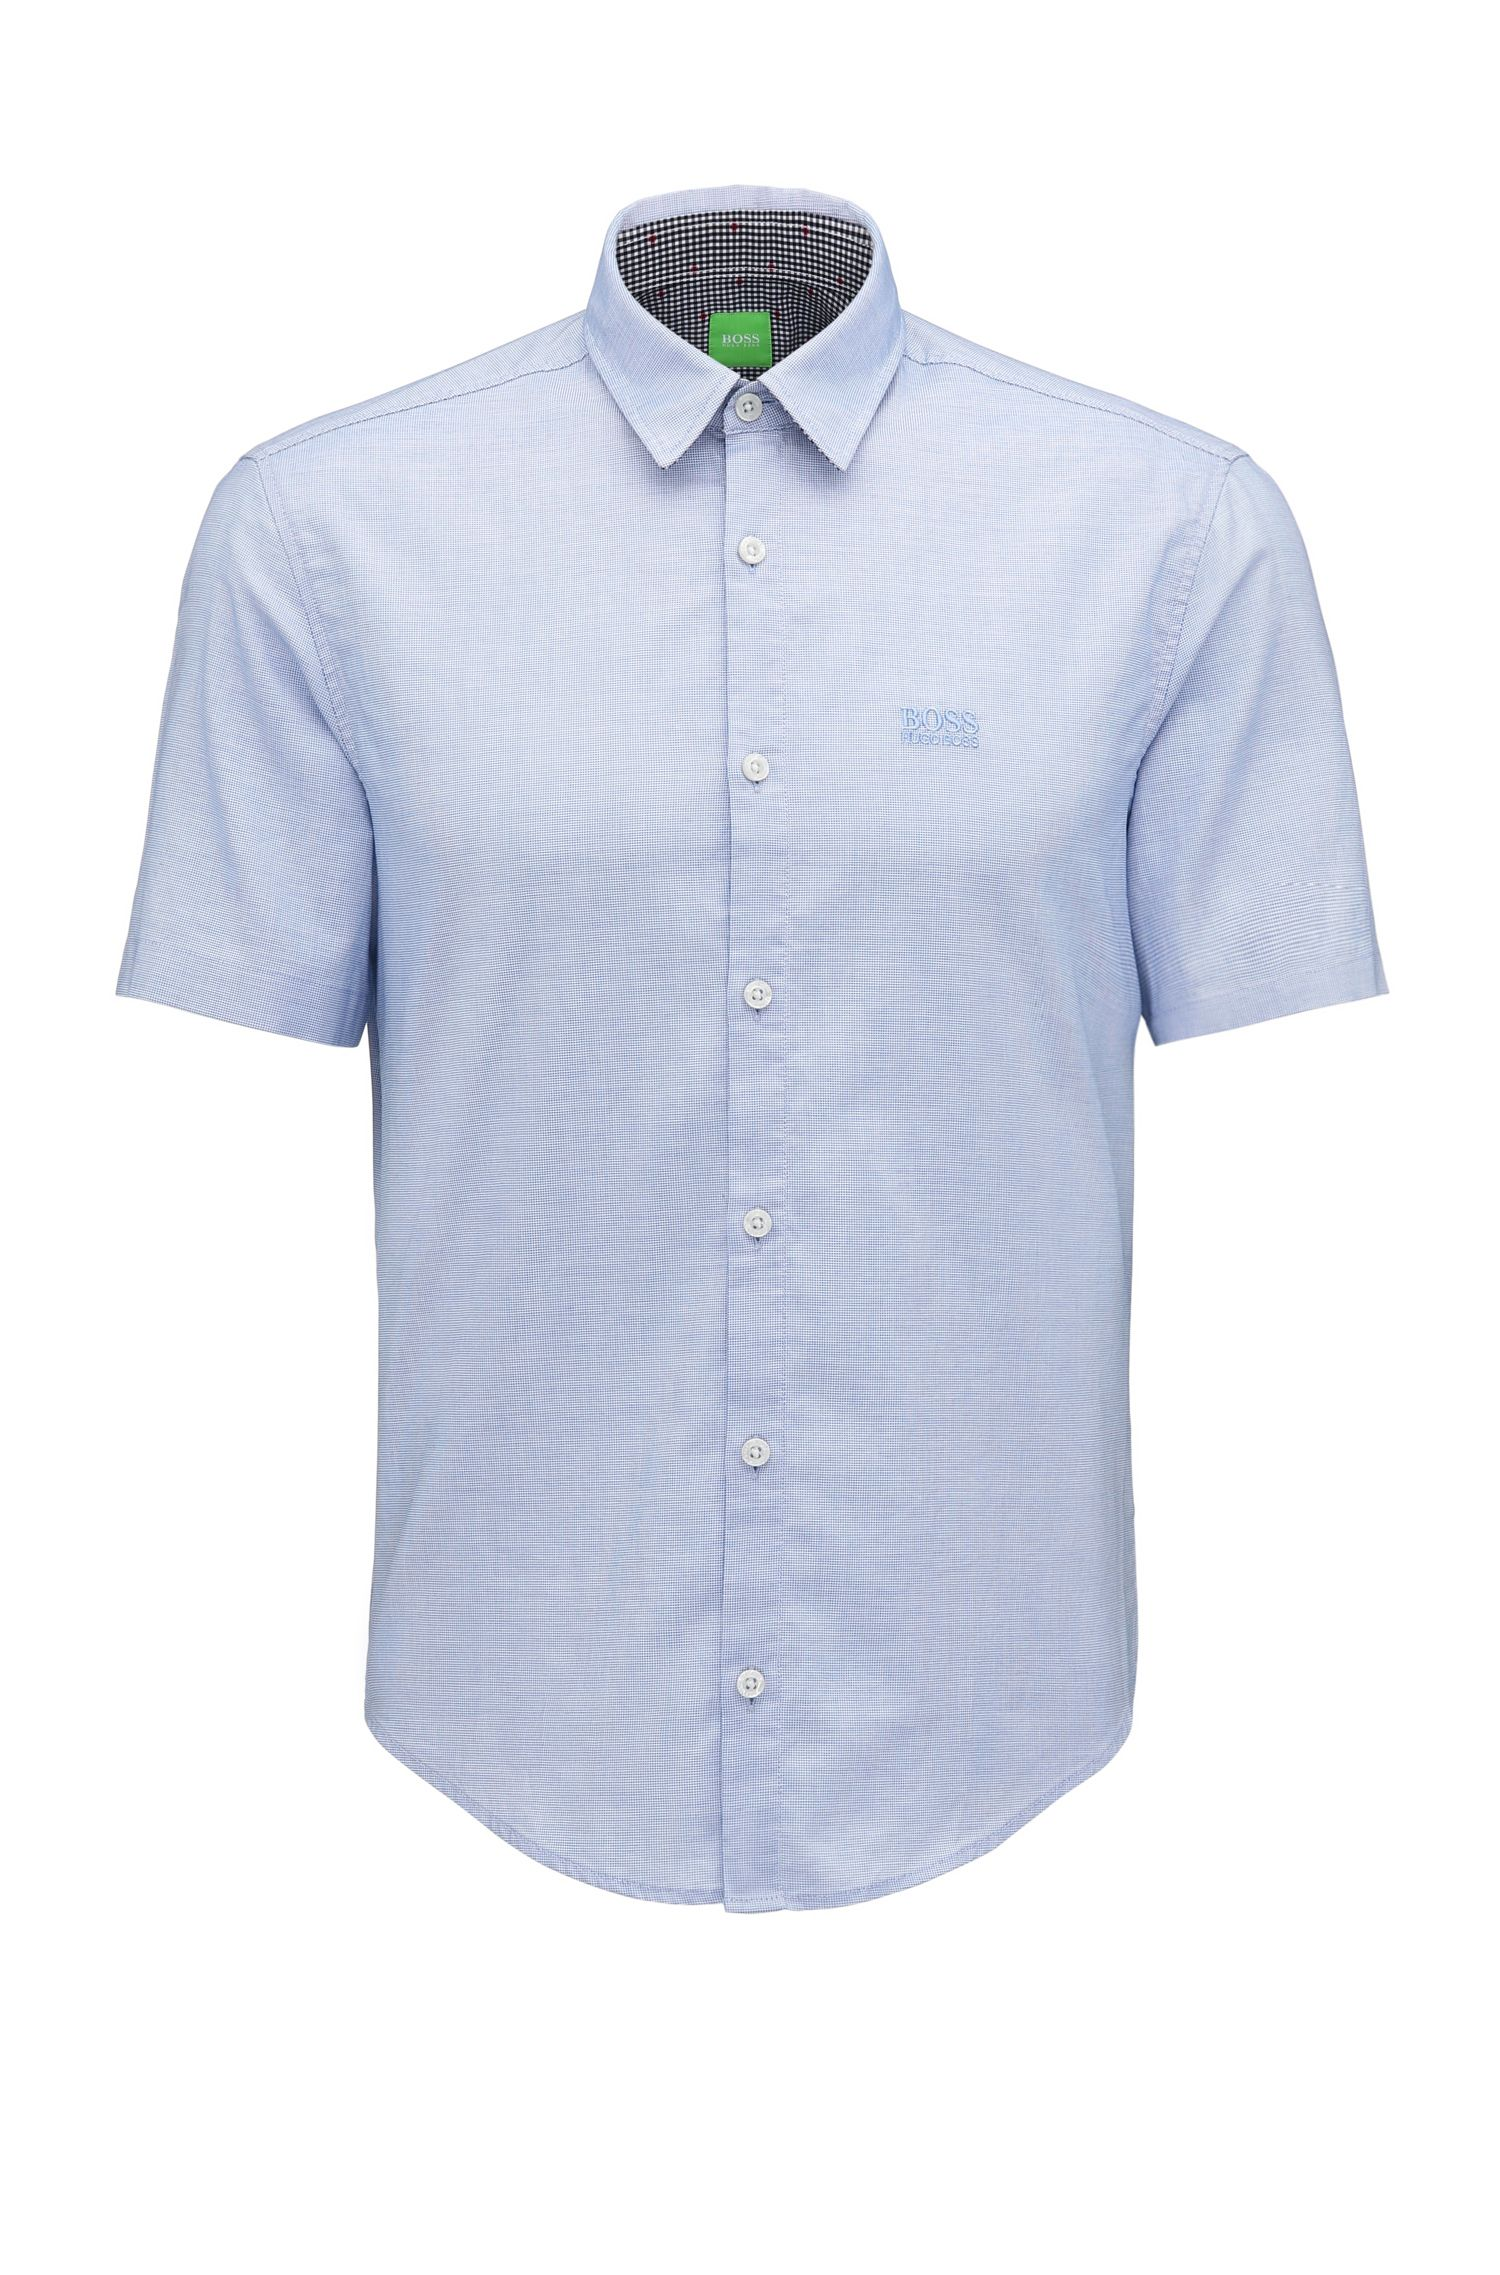 'C-Busterino' | Regular Fit, End-On-End Cotton Button Down Shirt